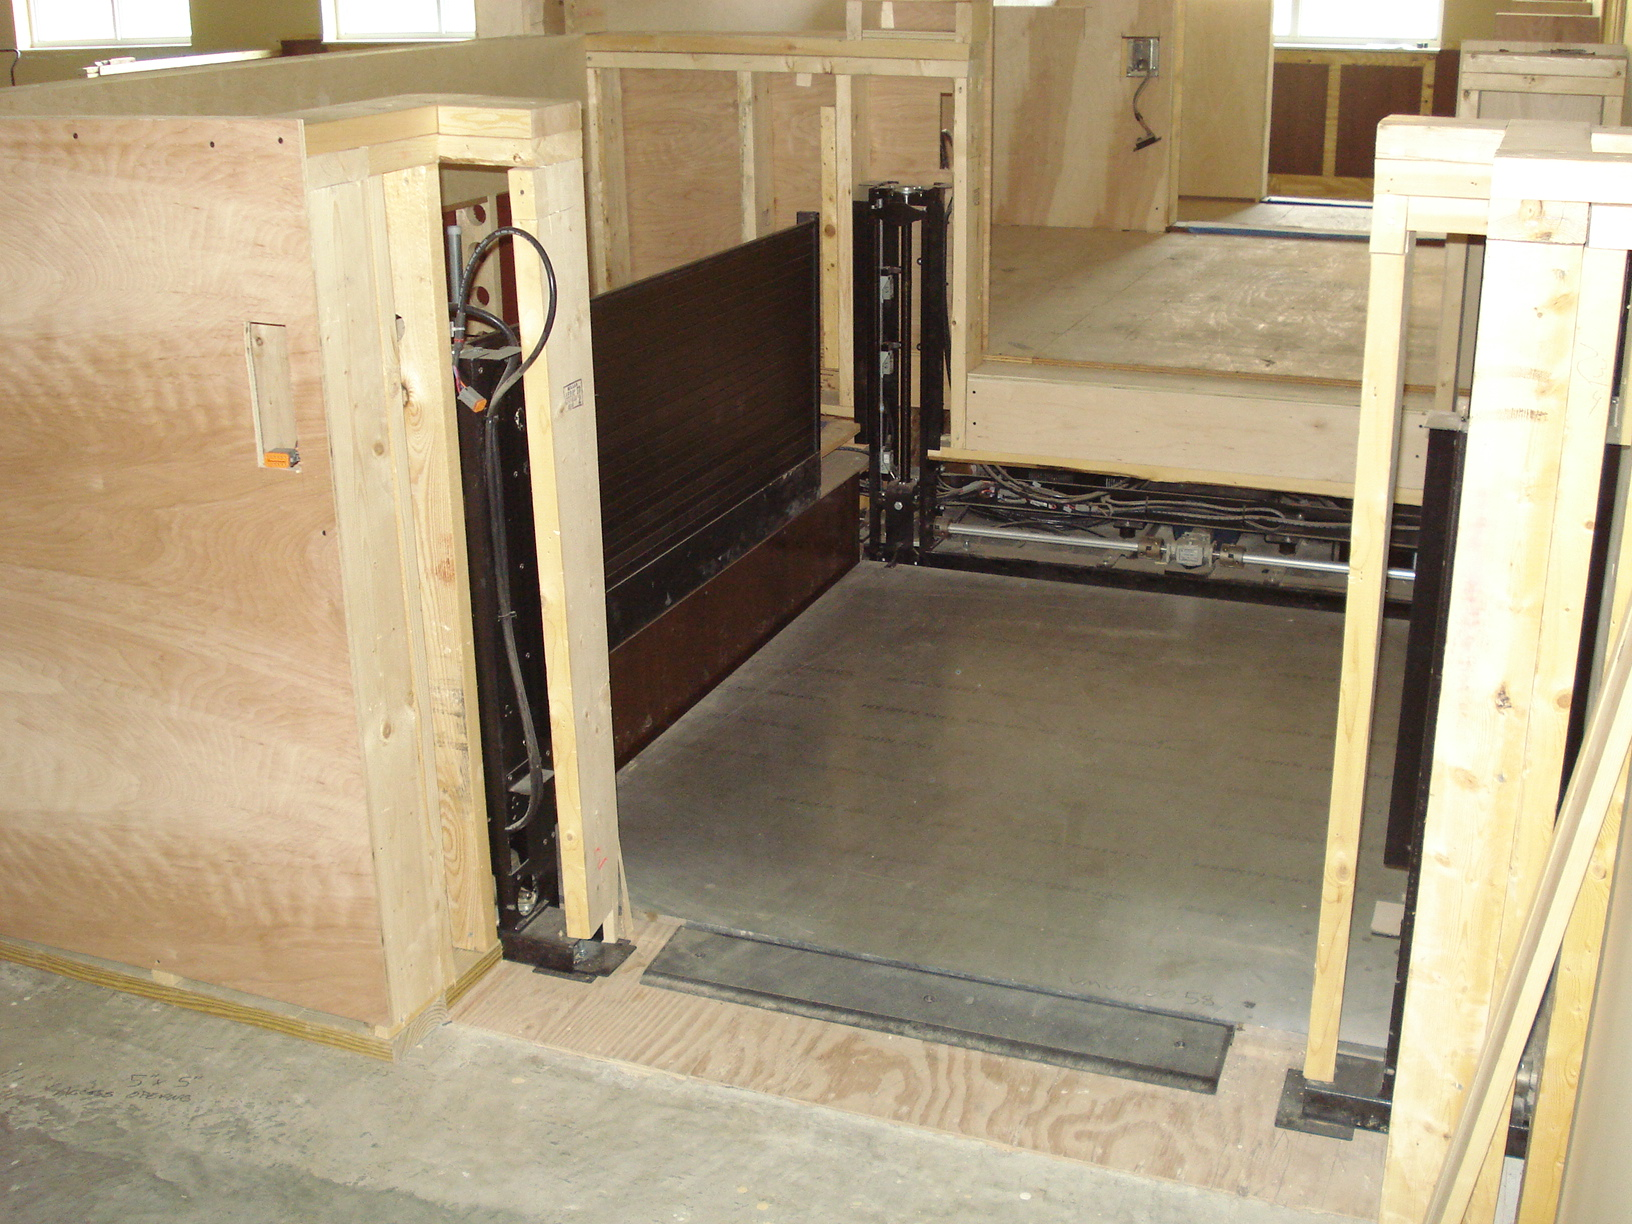 Courtroom under construction. Lift is installed and framing around lift mechanism is partially completed.